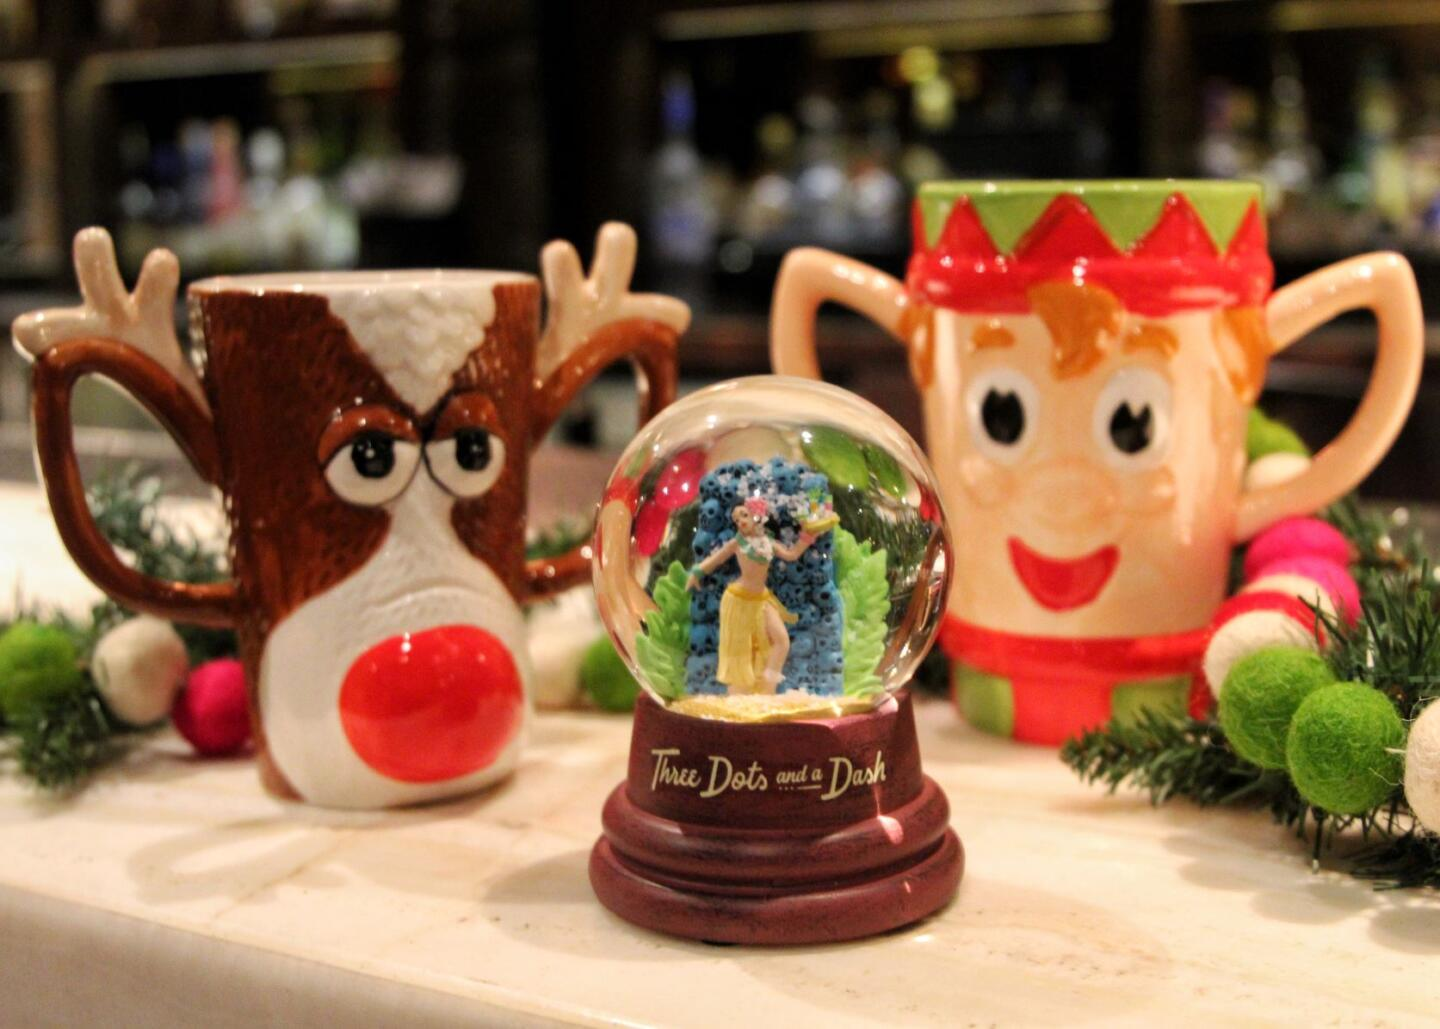 Deck the halls three dots package